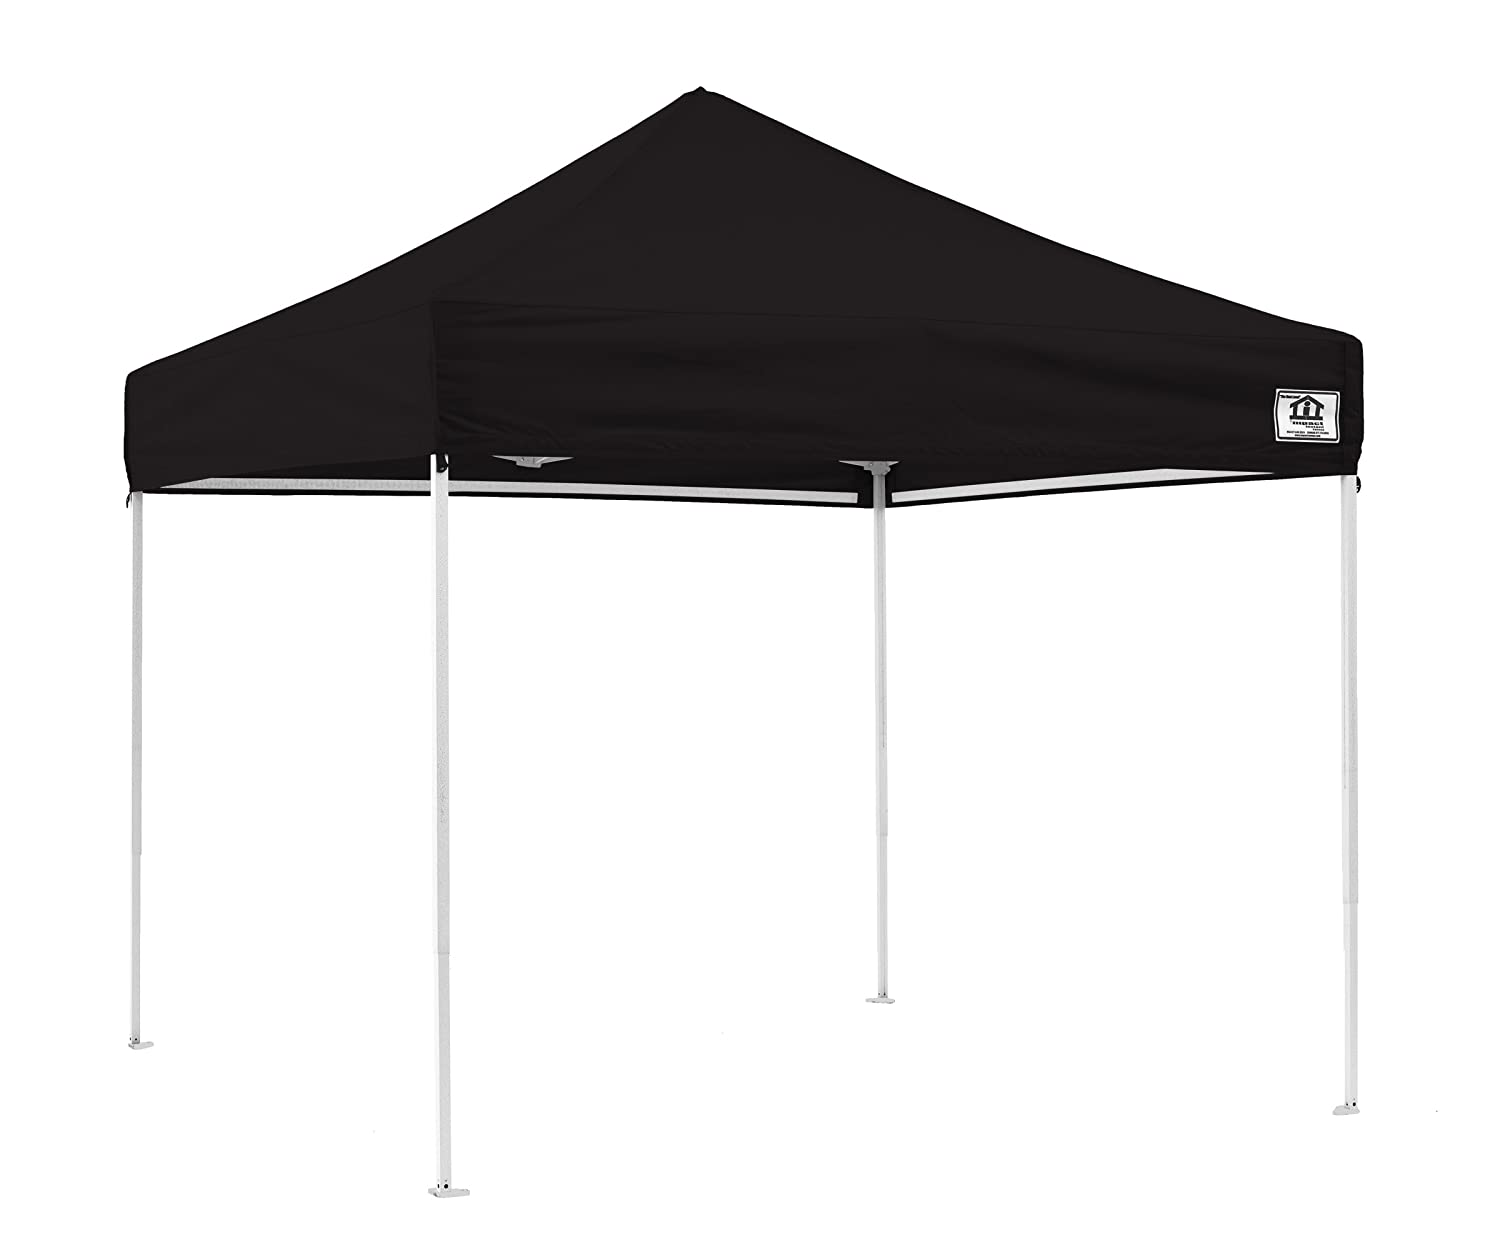 Amazon.com  Impact Canopy 10x10 EZ Pop Up Canopy Tent Portable Canopy with Roller Bag (Choose Color)  Outdoor Canopies  Garden u0026 Outdoor  sc 1 st  Amazon.com : custom tailgating tents - memphite.com